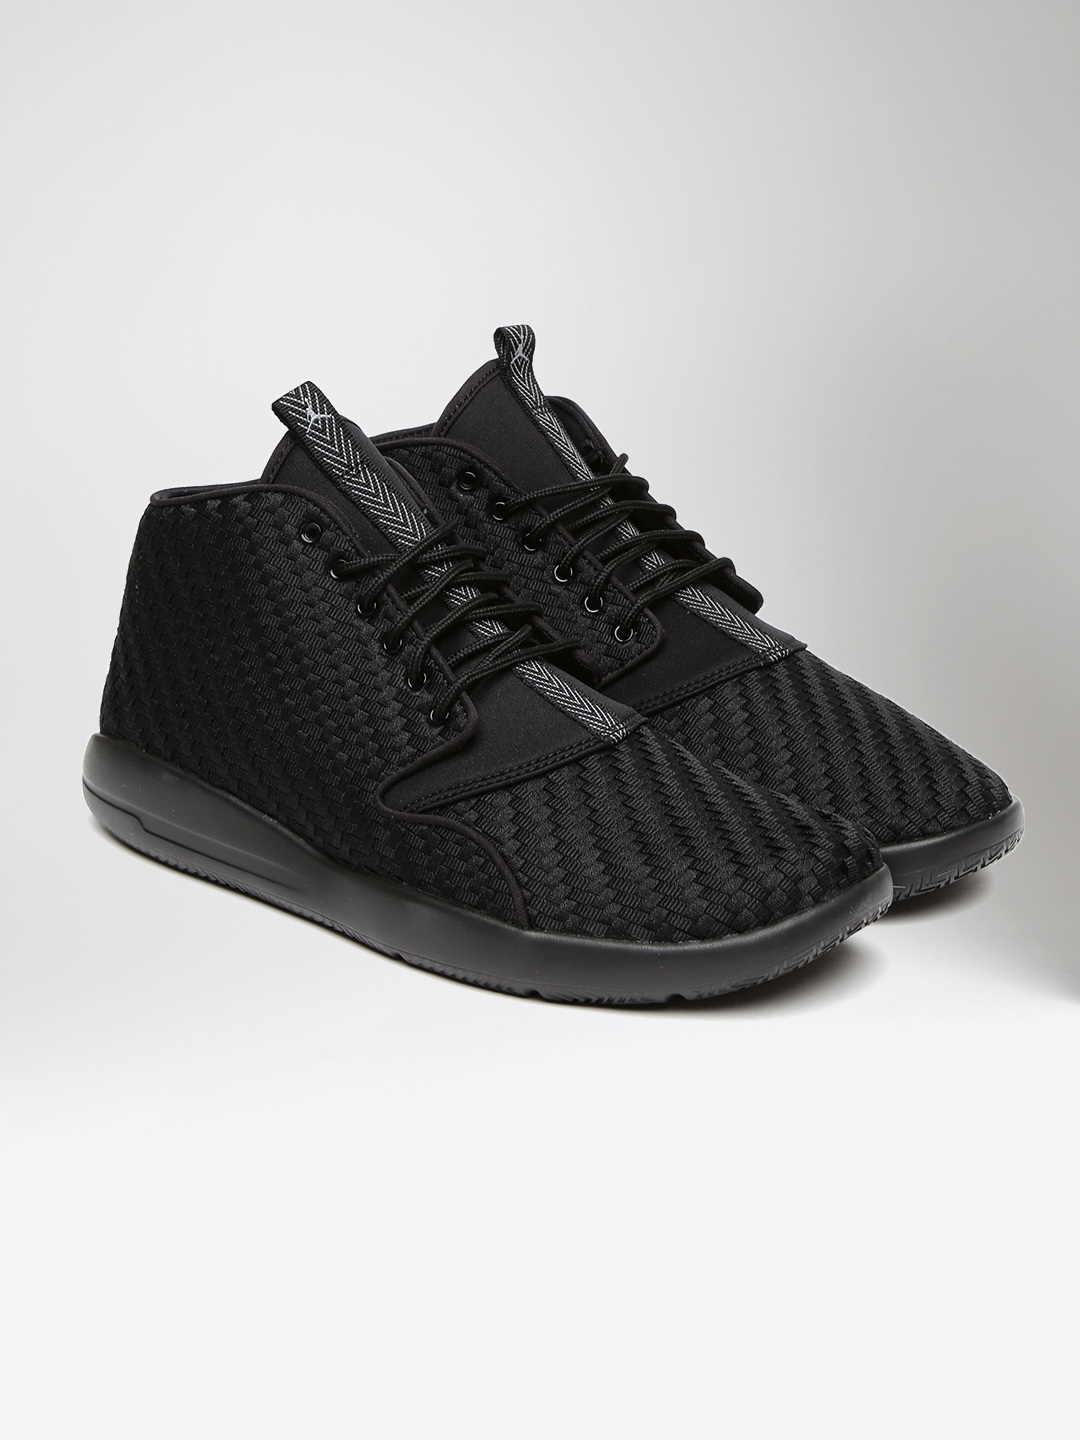 67c6cb2822af1f Buy Nike Men Black Jordan Eclipse Chukka Basketball Shoes - Sports ...